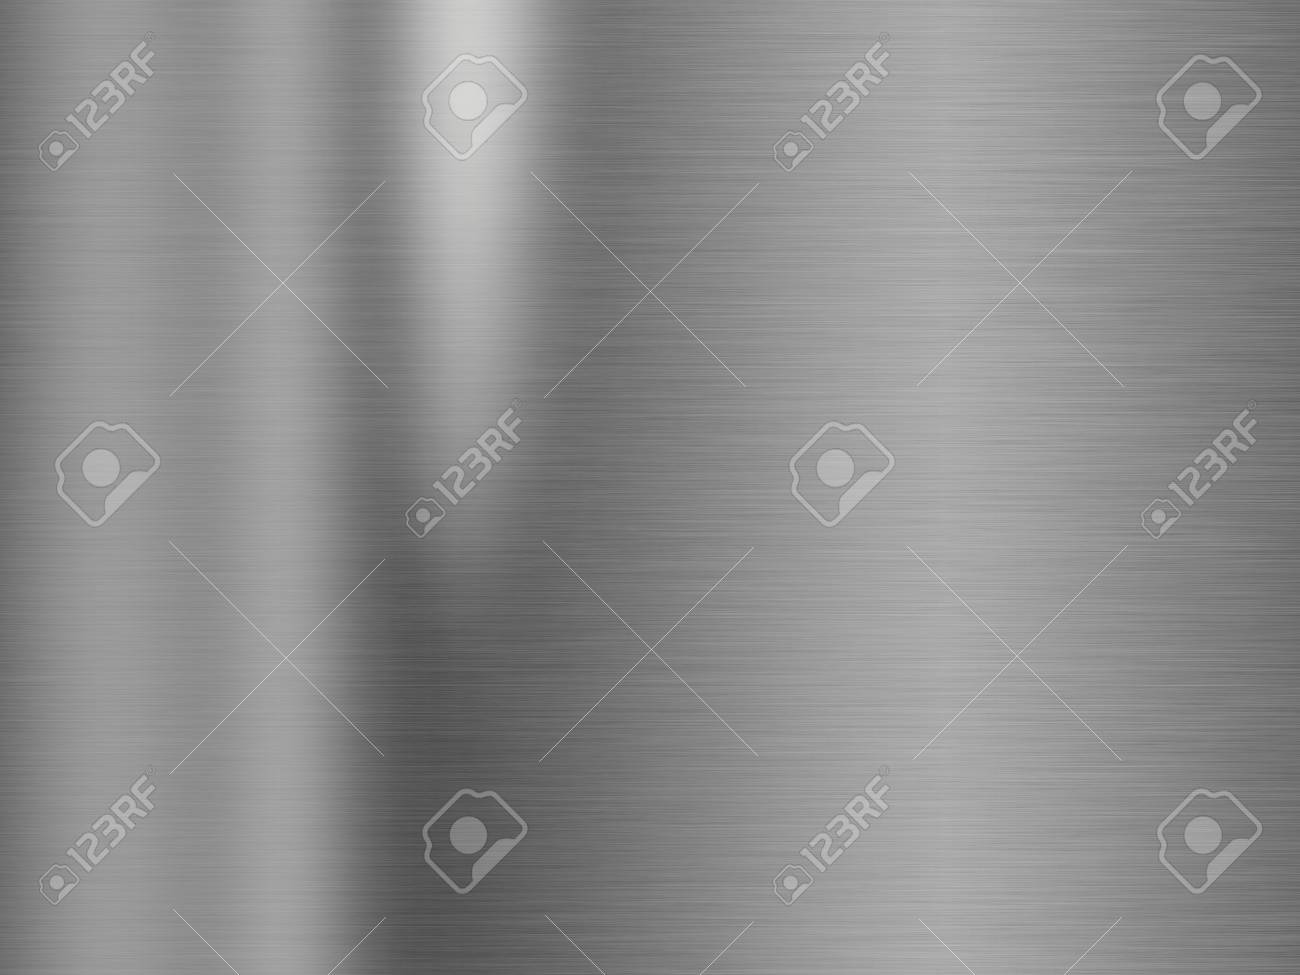 Stainless steel texture or metal texture background Banque d'images - 75076716